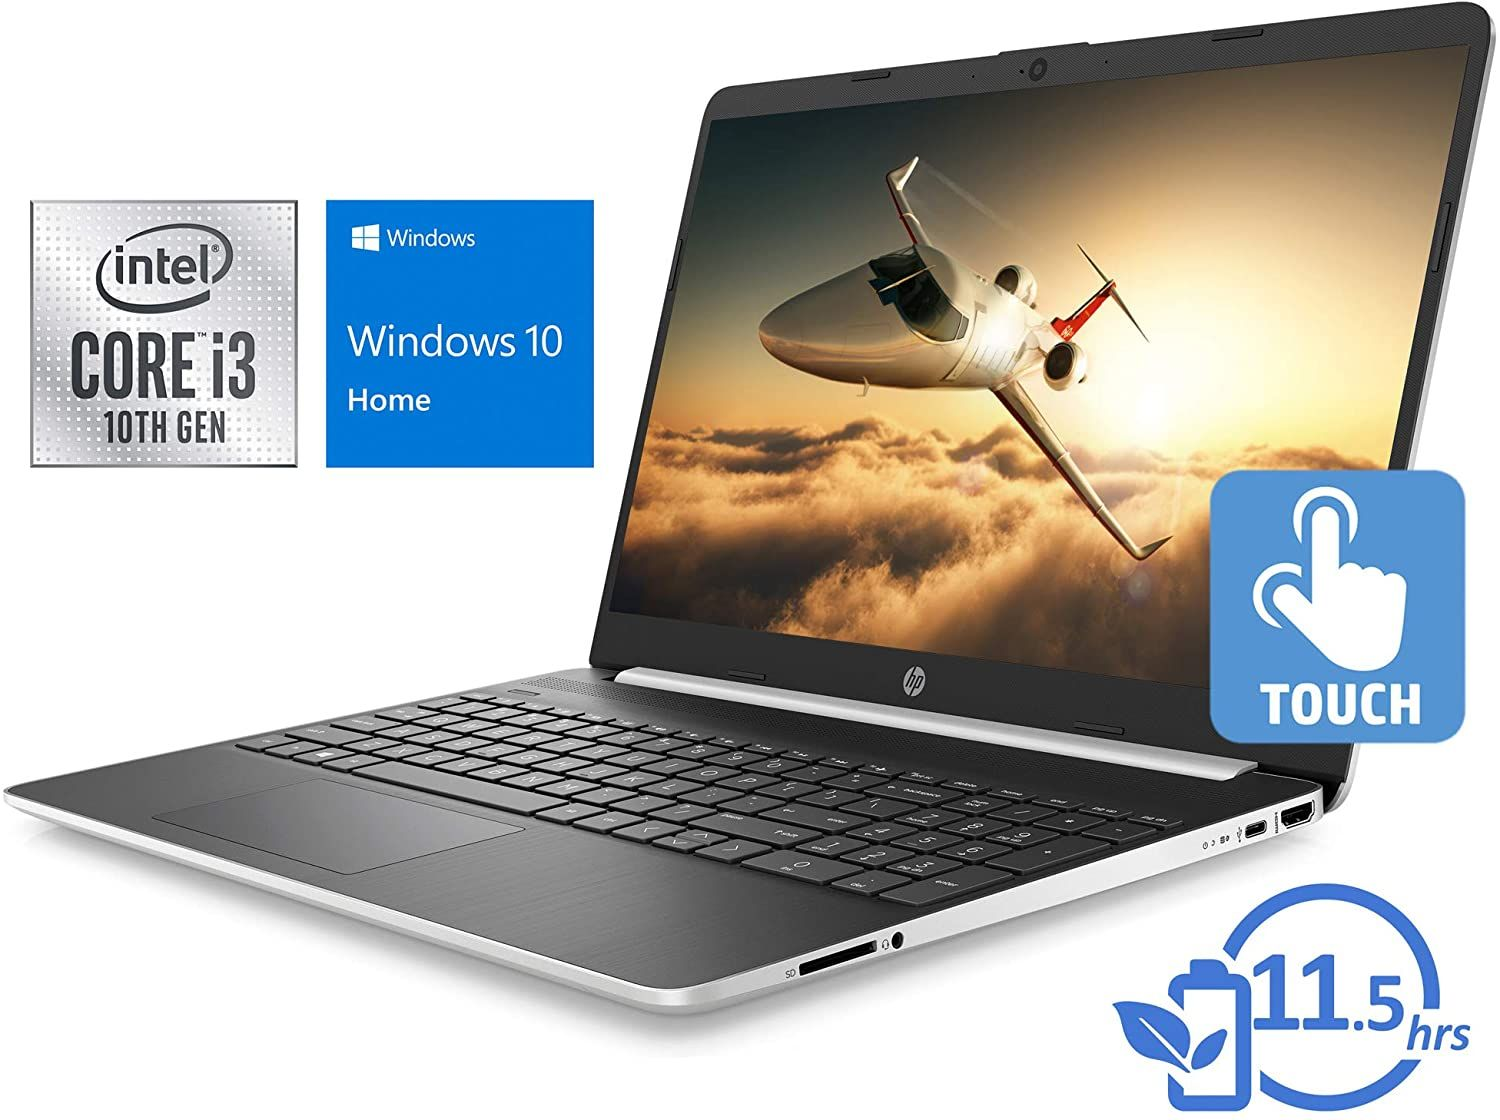 How To Get 1920x1080 Resolution On 1366x768 Screen Windows 10 Fixguider